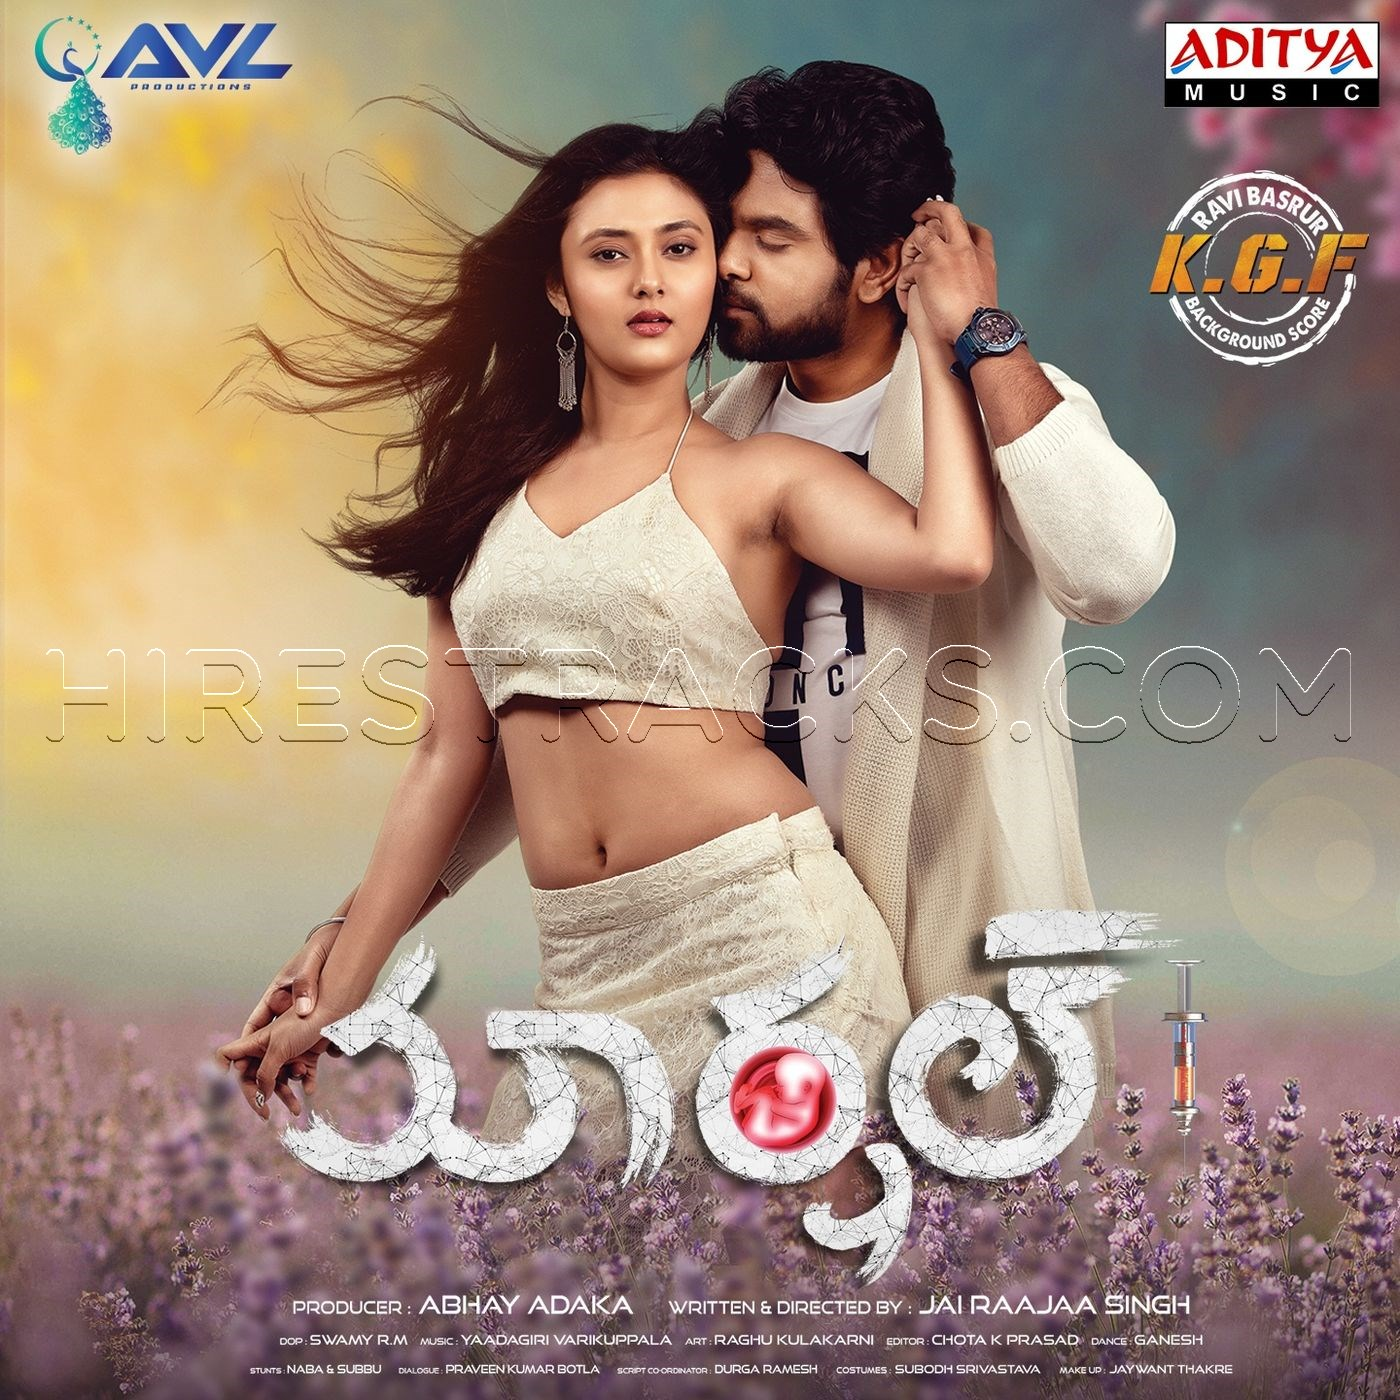 Marshal (Original Background Score) (2019) (Varikuppala Yadagiri) (Aditya Music) [Digital-DL-FLAC]